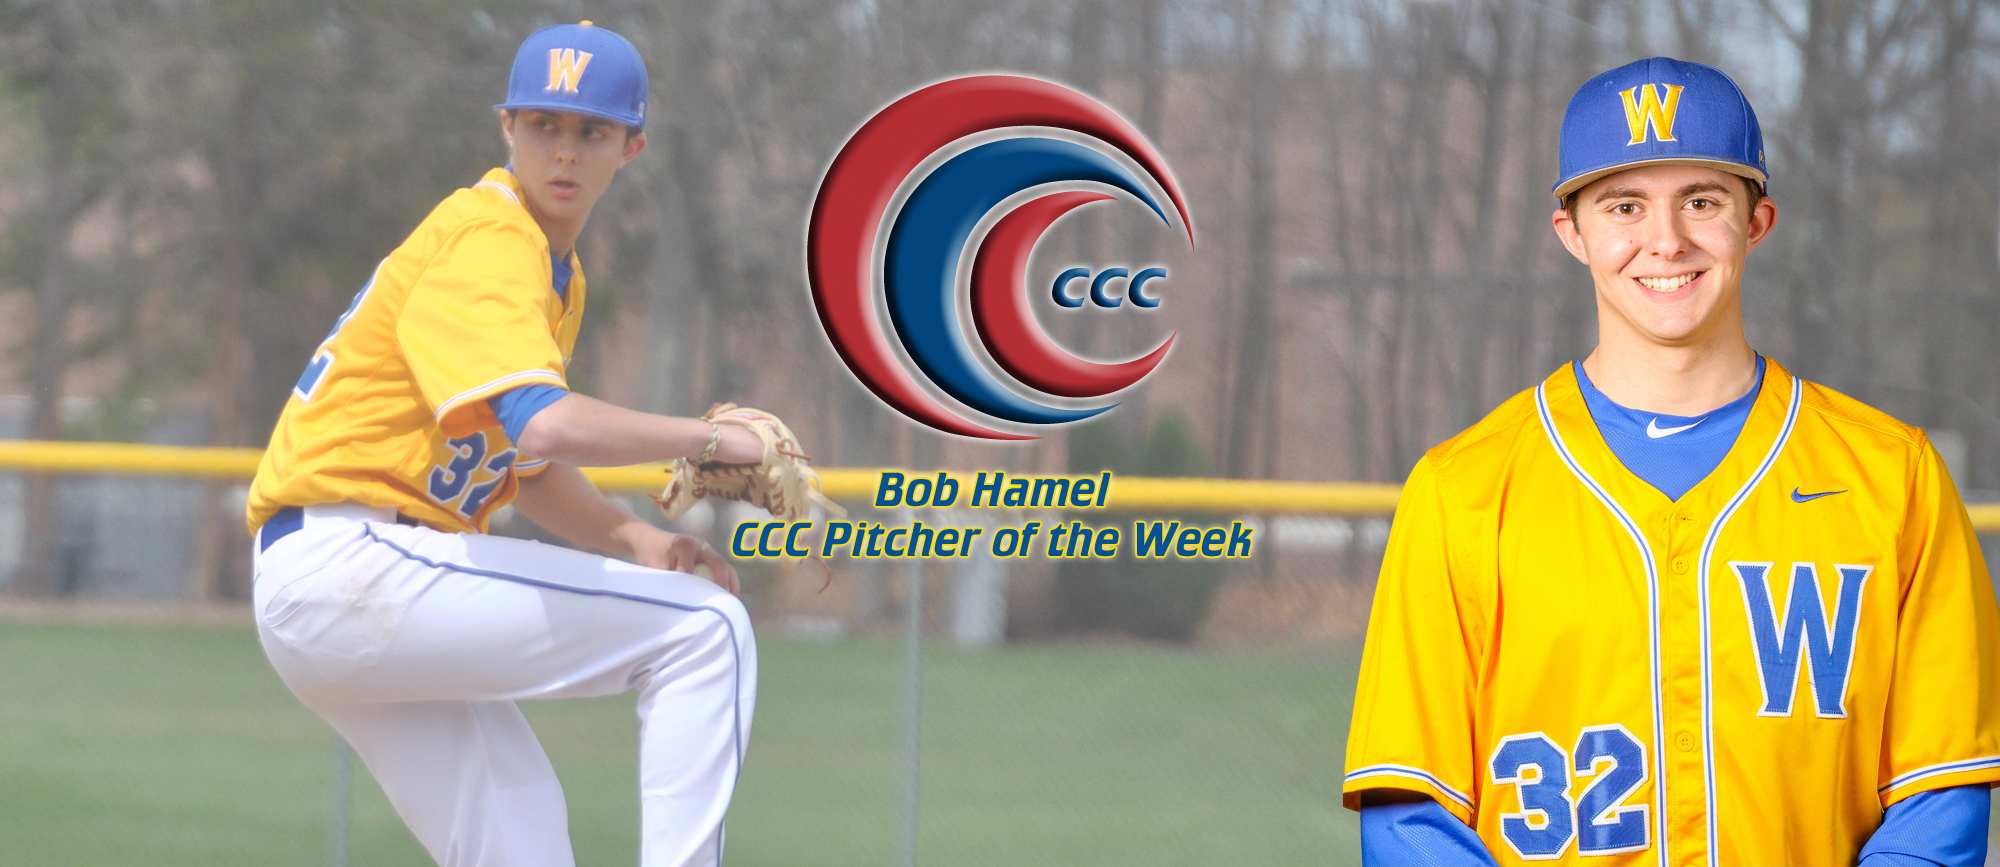 Bob Hamel Named CCC Pitcher of the Week